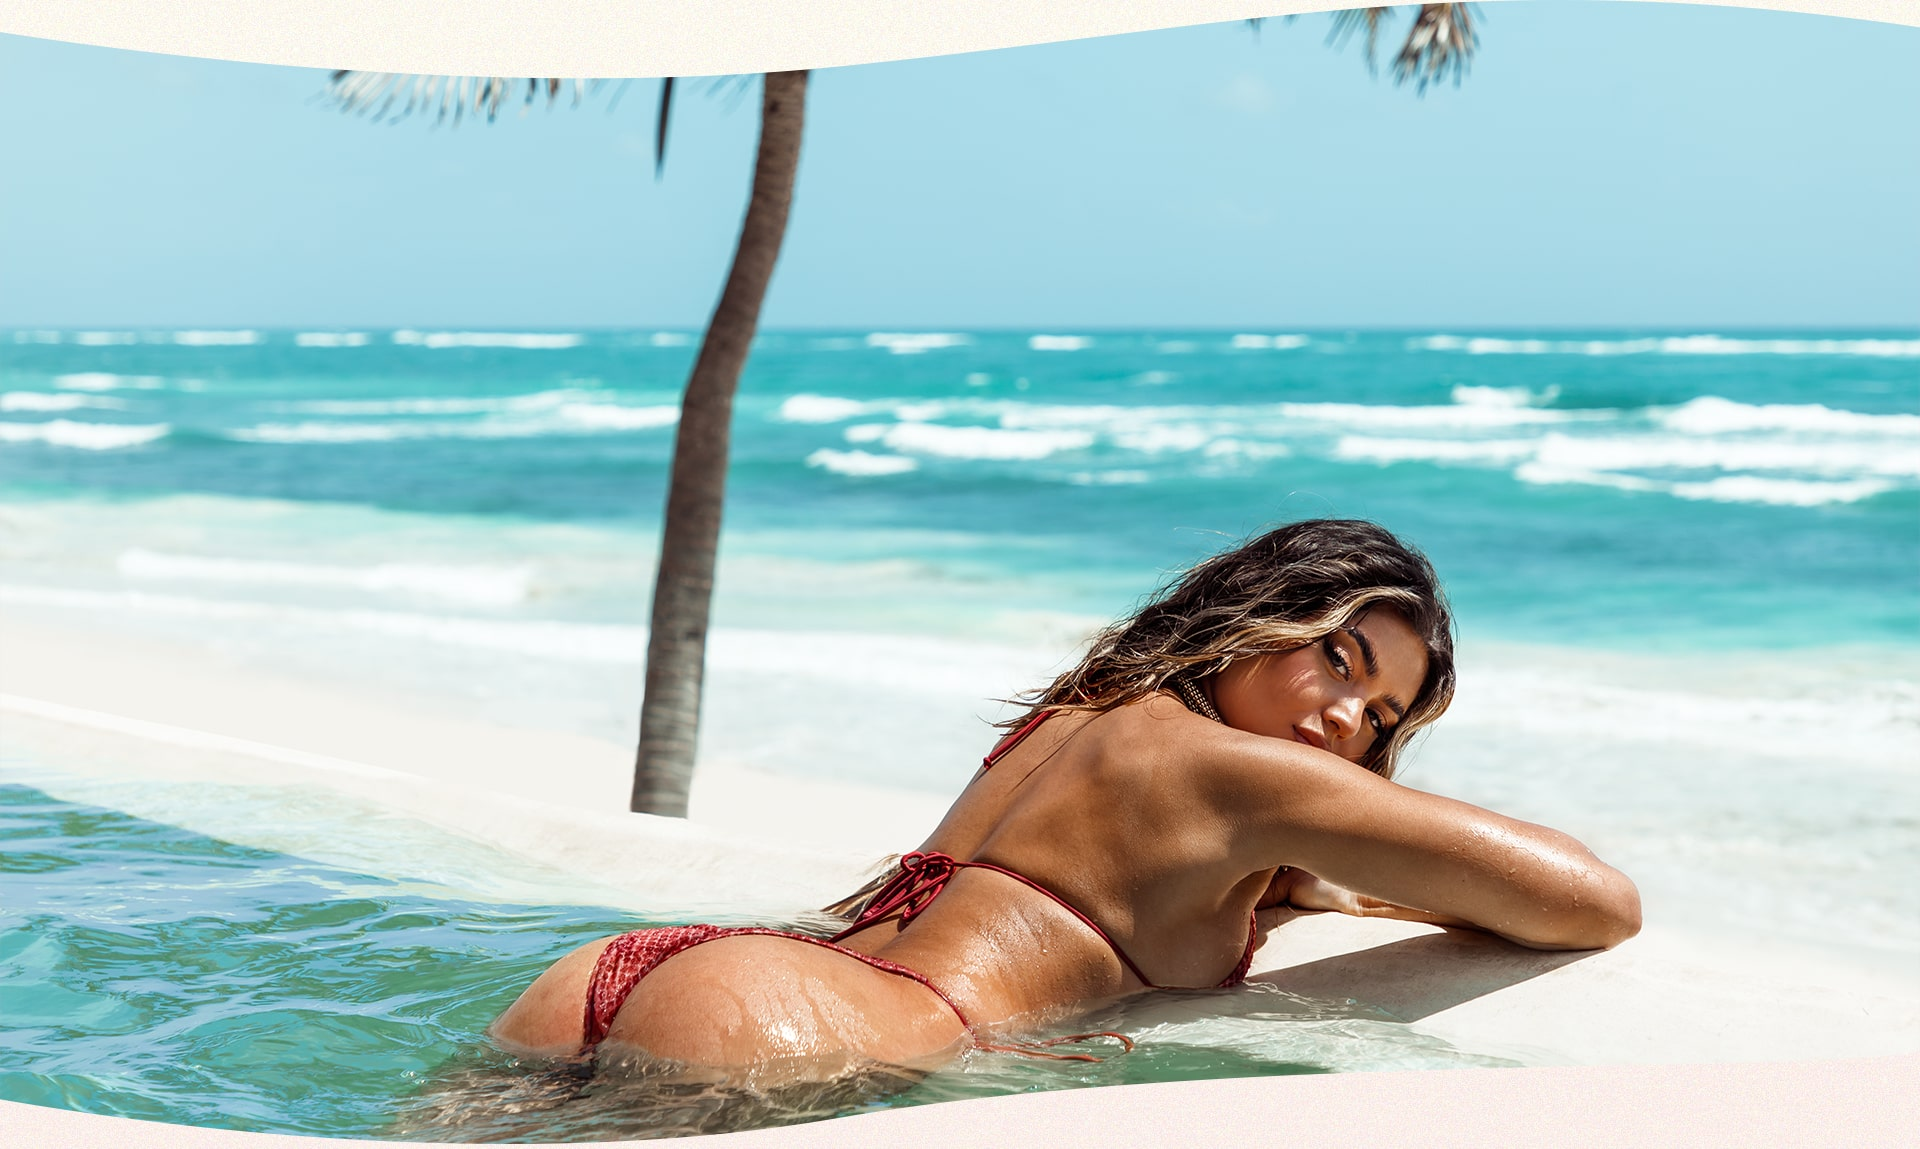 Destination Swim Tulum Lookbook Image Desktop 7